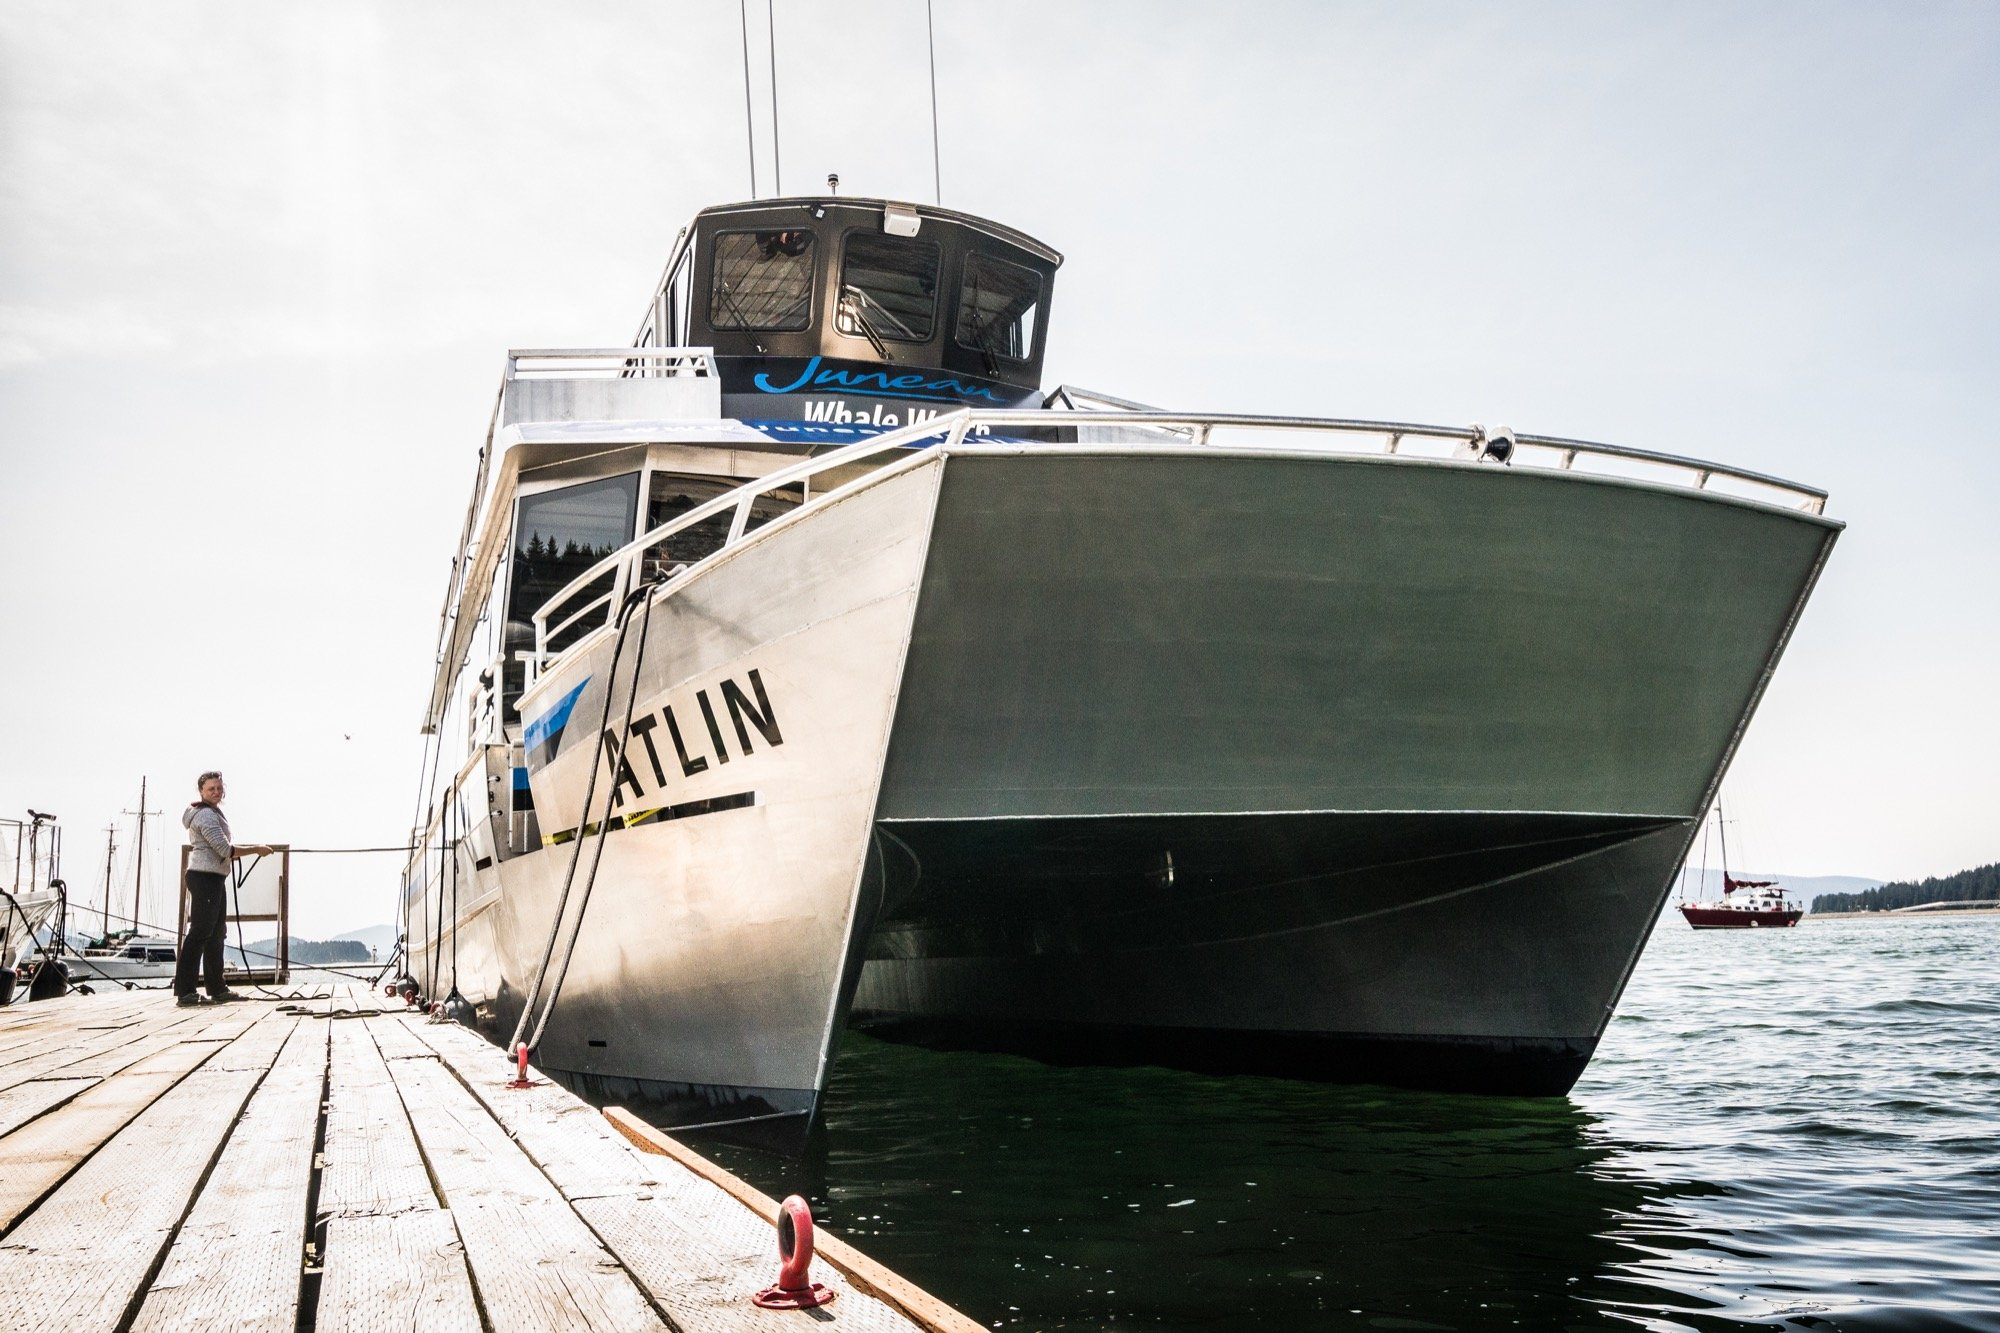 Meet the Atlin: our shiny new boat!